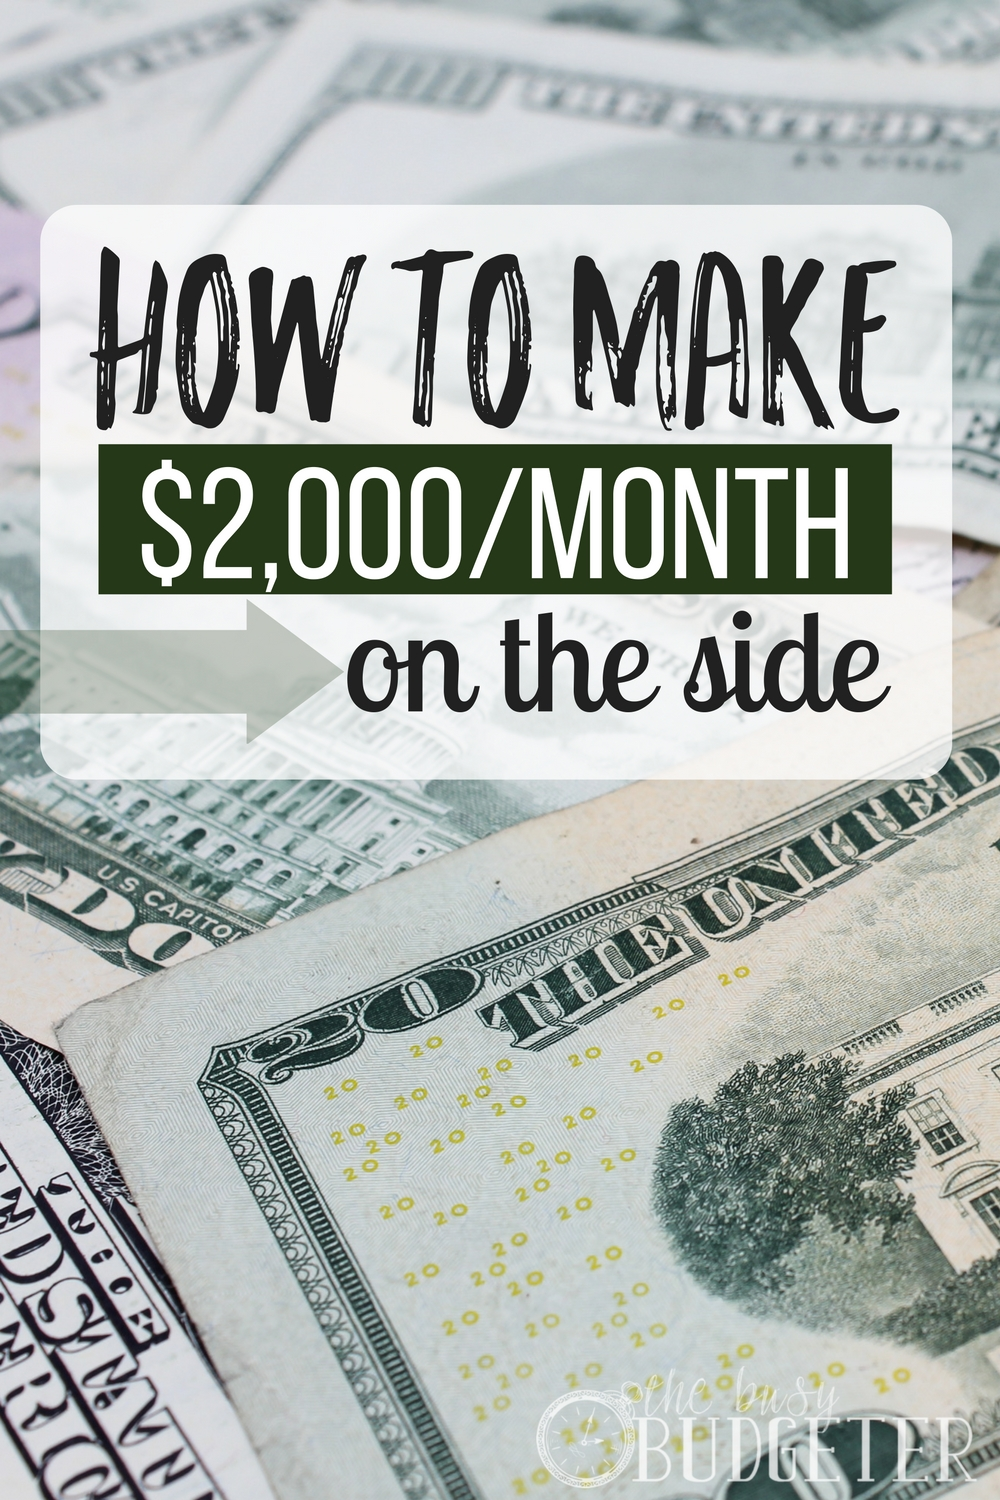 I do 3 of these already and make over $1,500/month as a stay at home mom. Excited to add a few more in. I'd love to make $2,000 a month every month consistently. The more time I spend making money on the side, in extra job.. the more I realize how easy it is to make extra money from home.